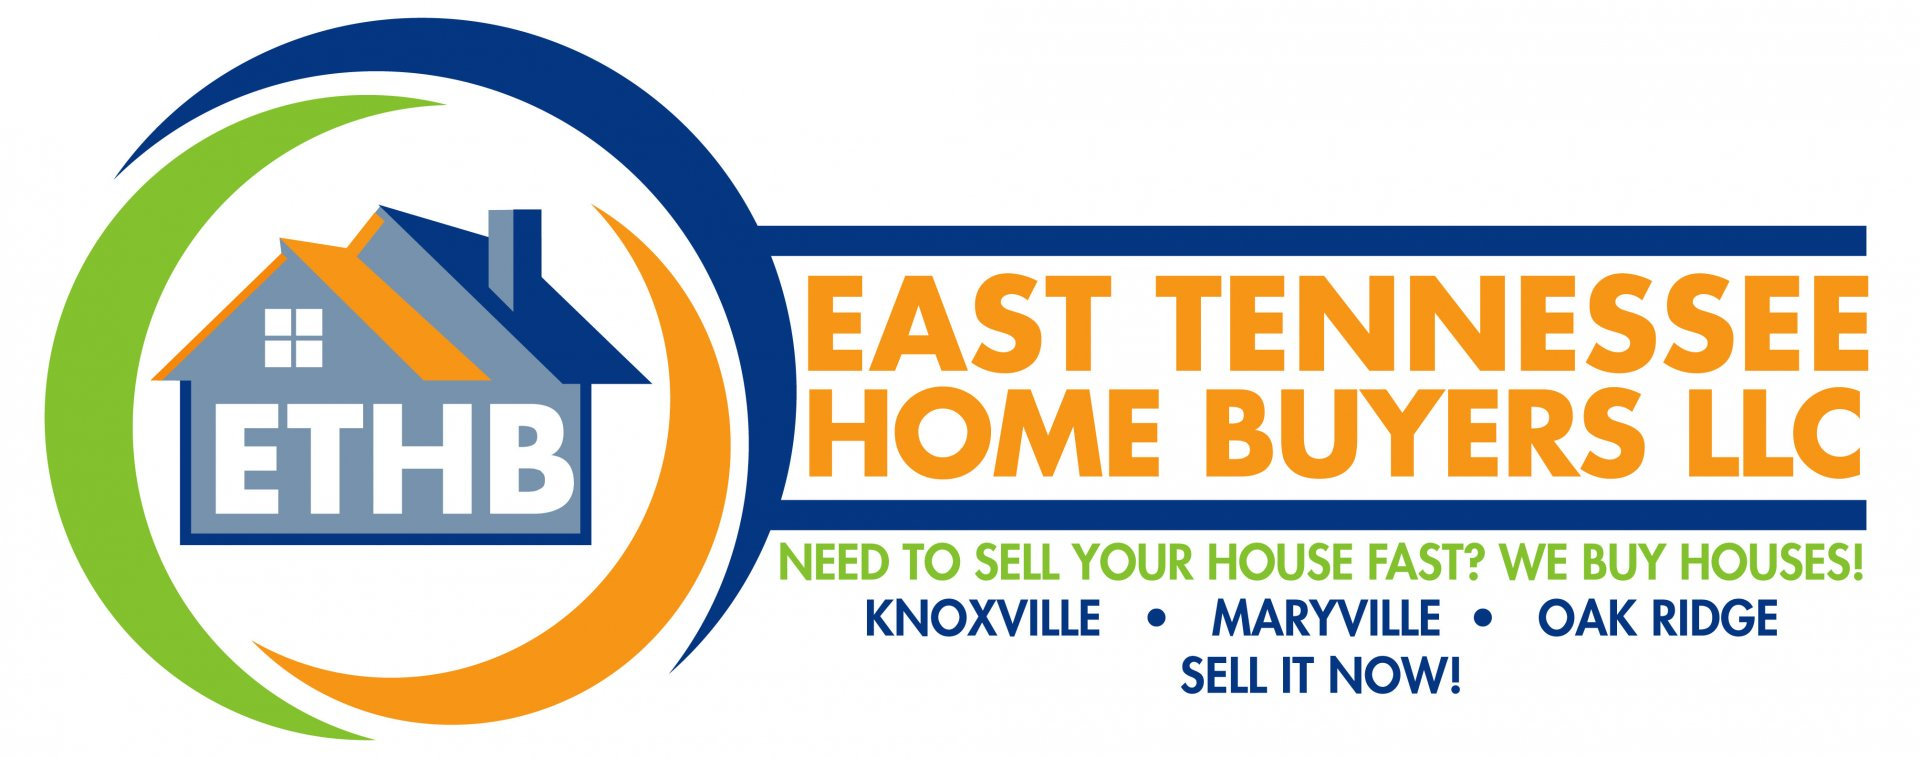 Sell My House Fast In Knoxville TN - We buy houses - East Tennessee ...